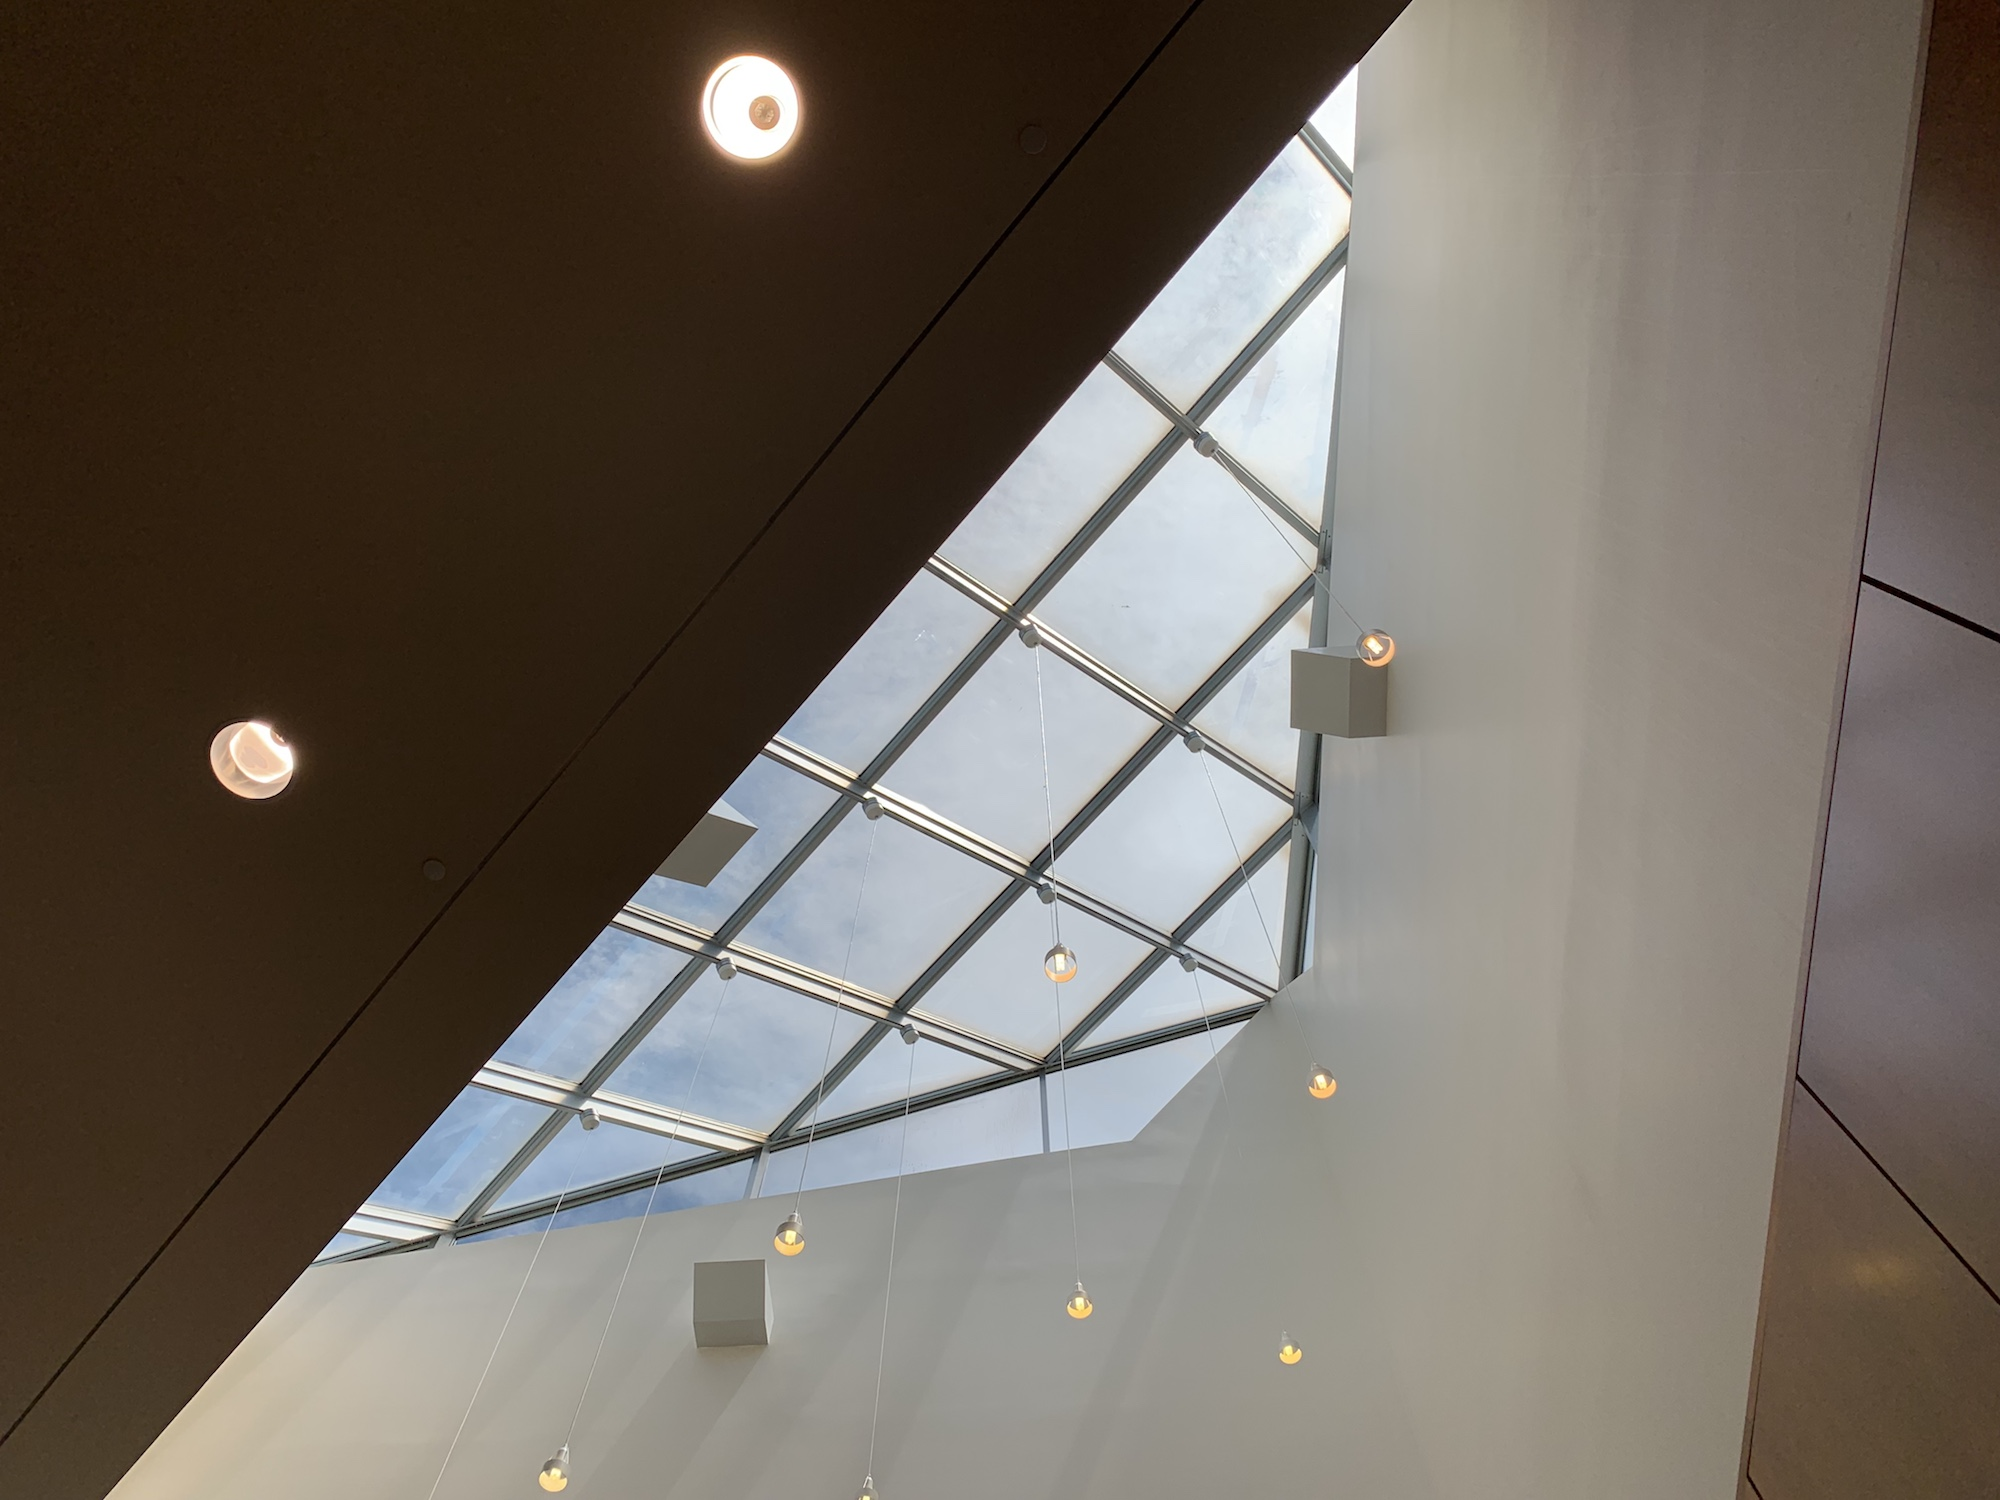 A skylight window above a study area letting light on the desks below.